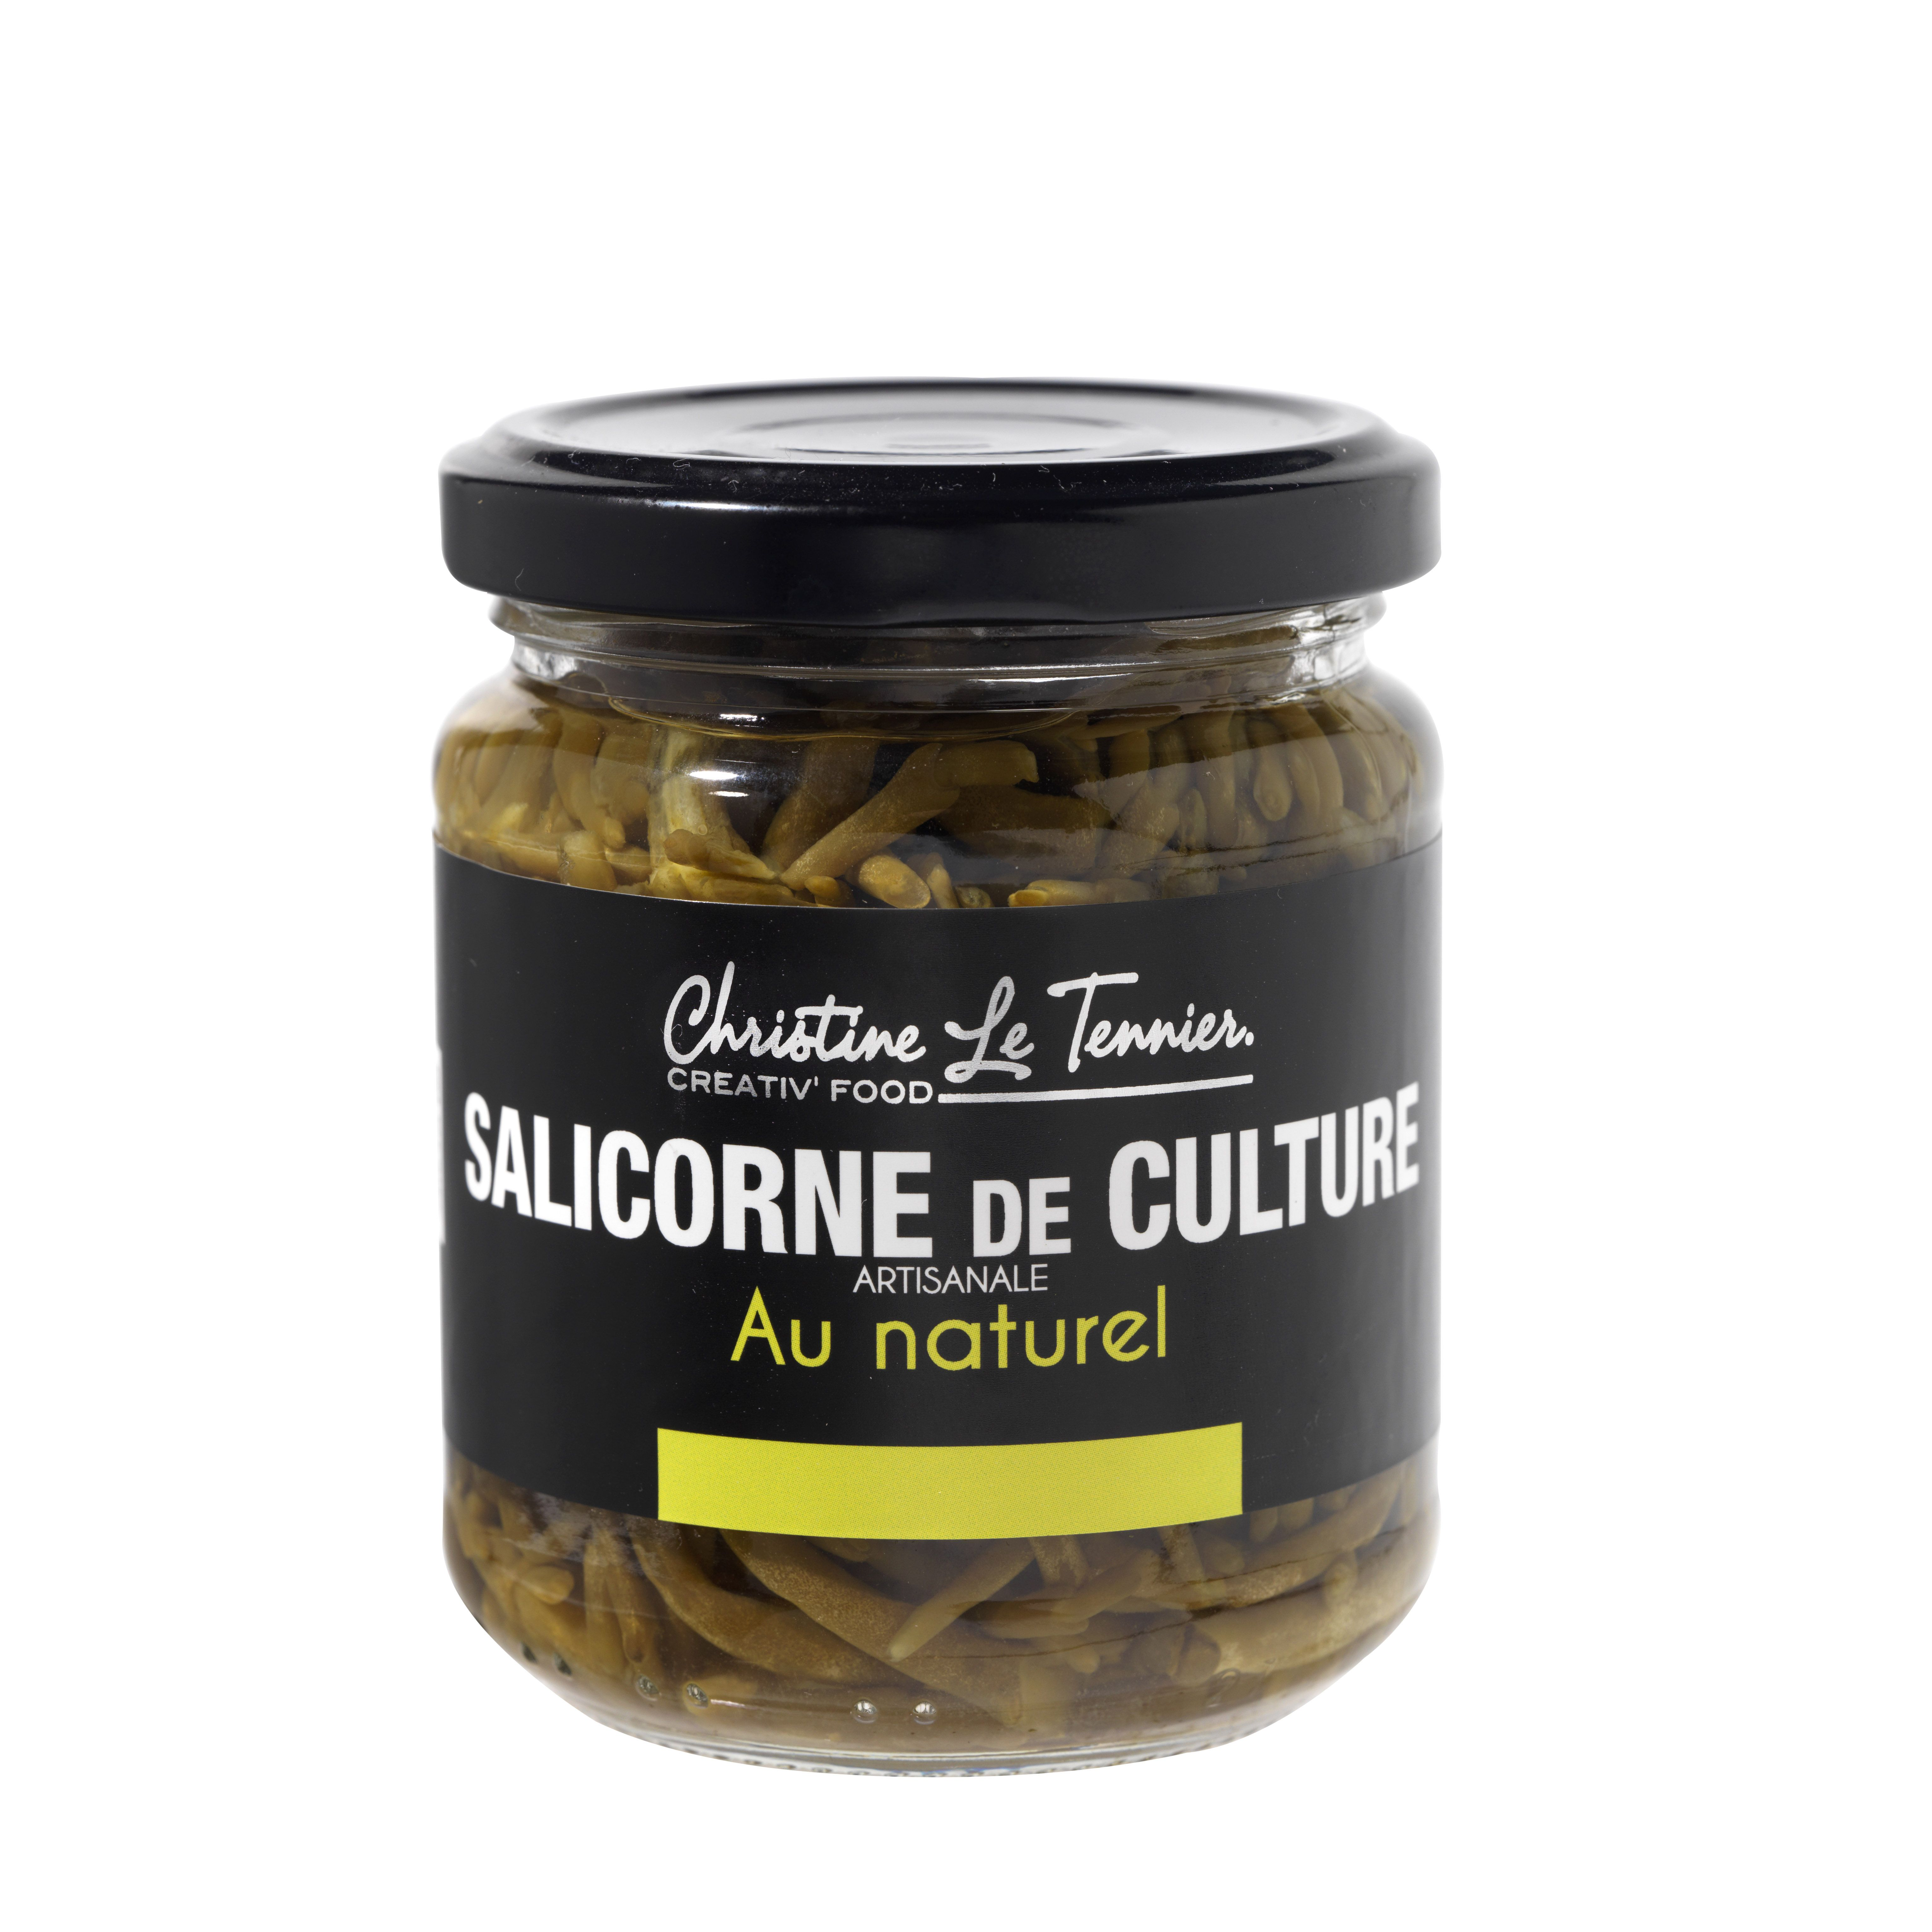 SALICORNE DE CULTURE AU NATUREL 100G